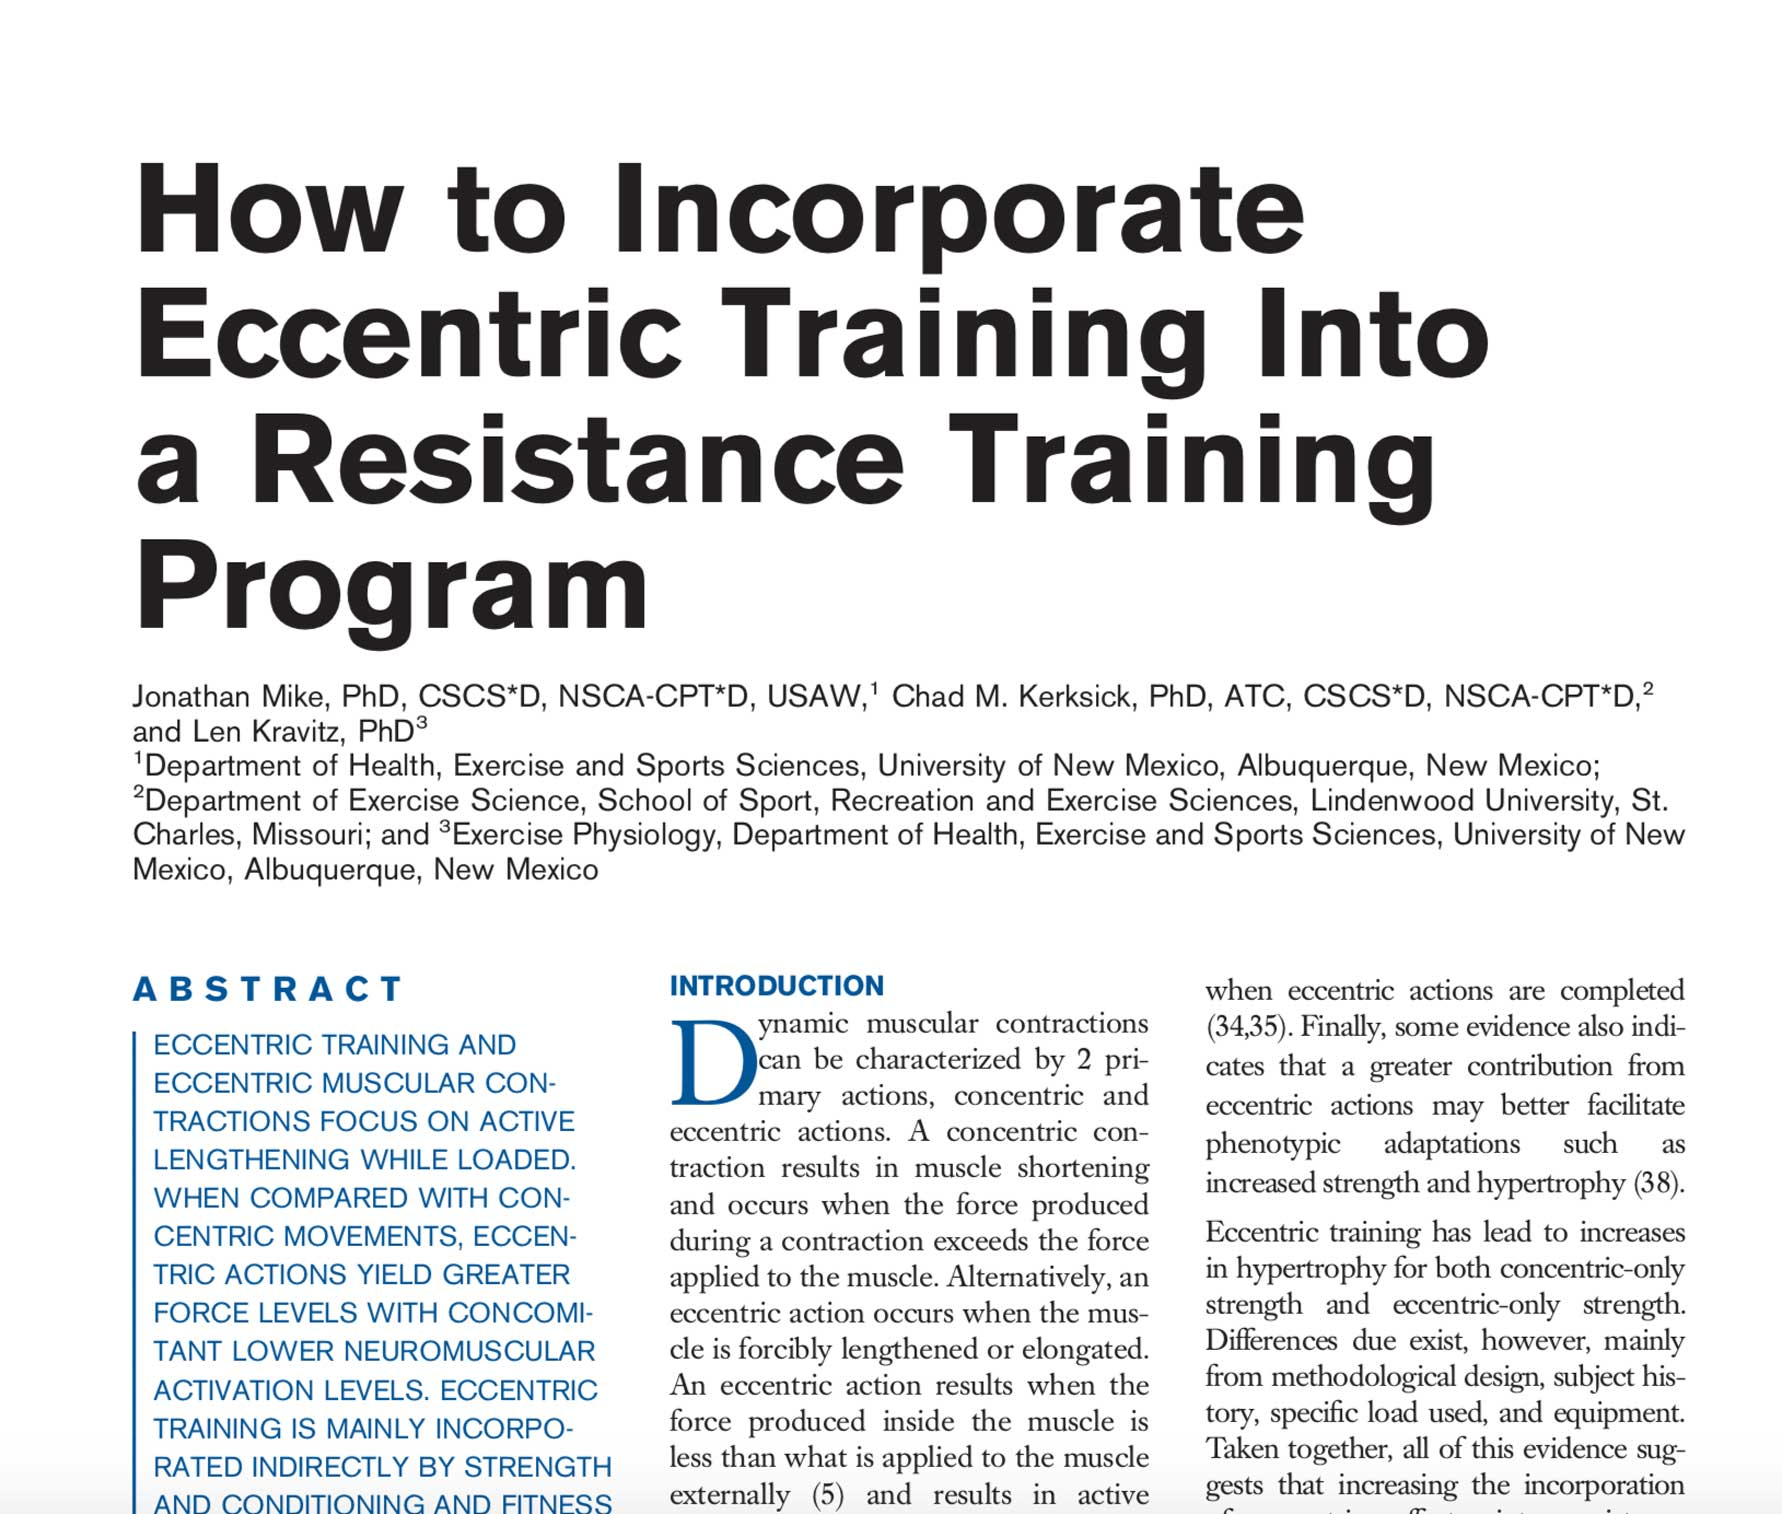 How to Incorporate Eccentric Training